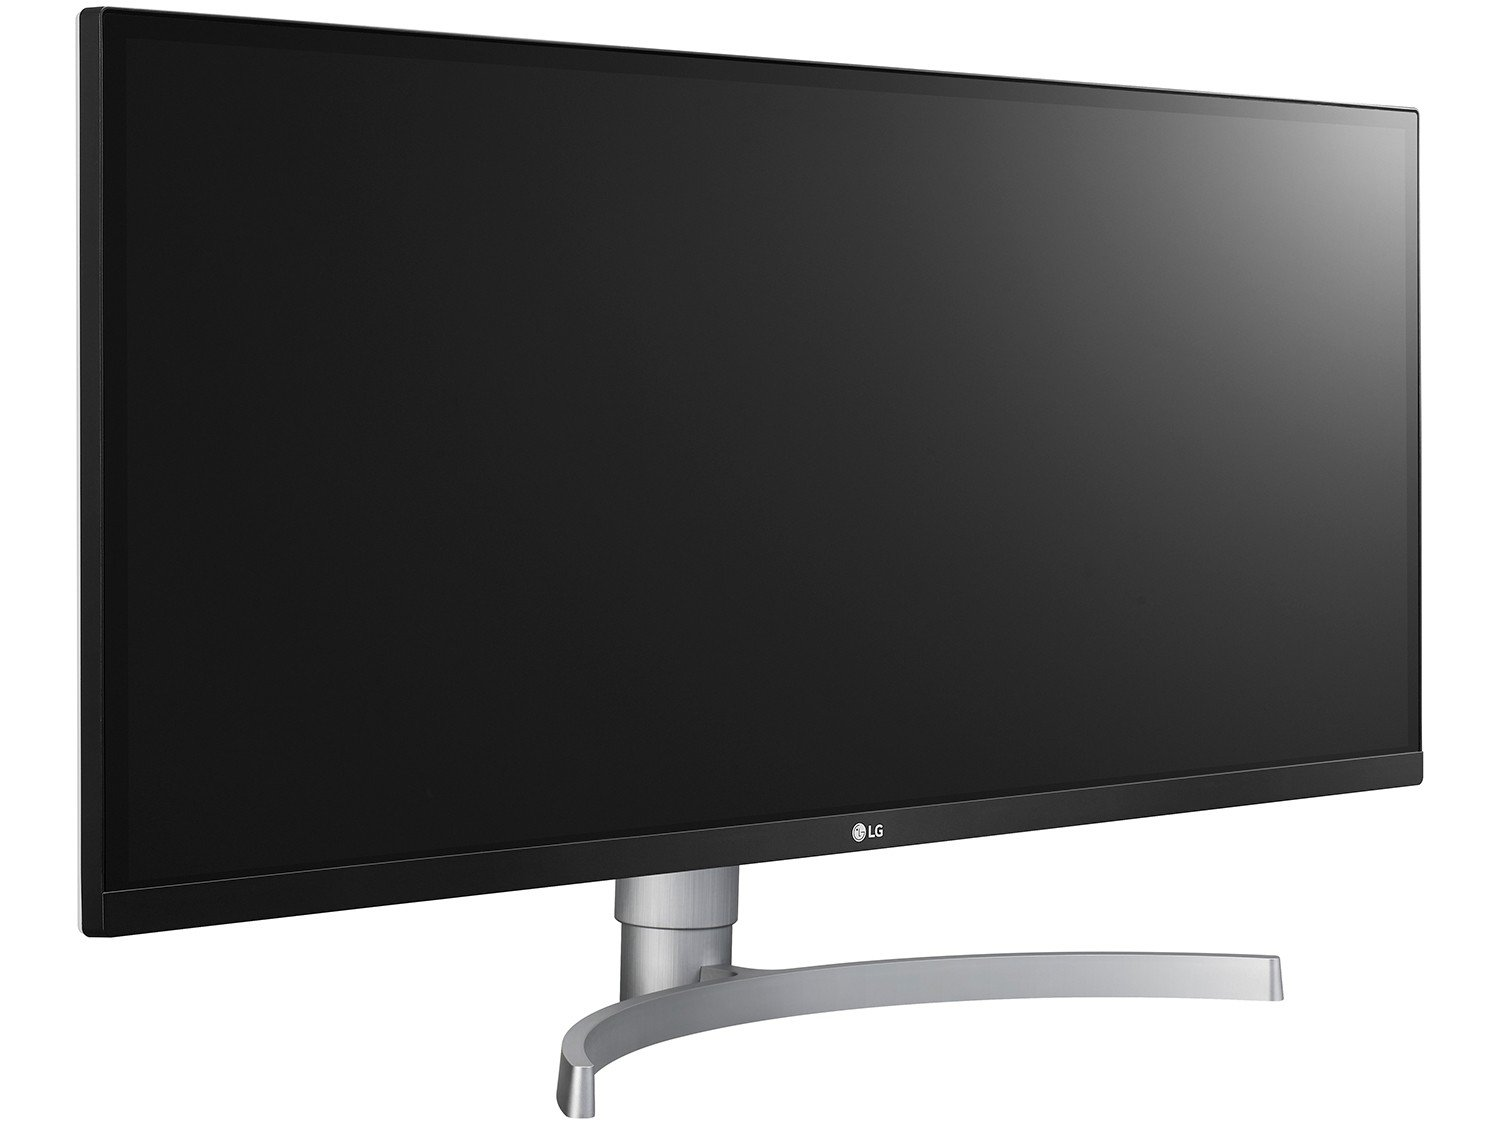 Foto 5 - Monitor para PC Full HD UltraWide LG LED IPS 34 - 34WK650